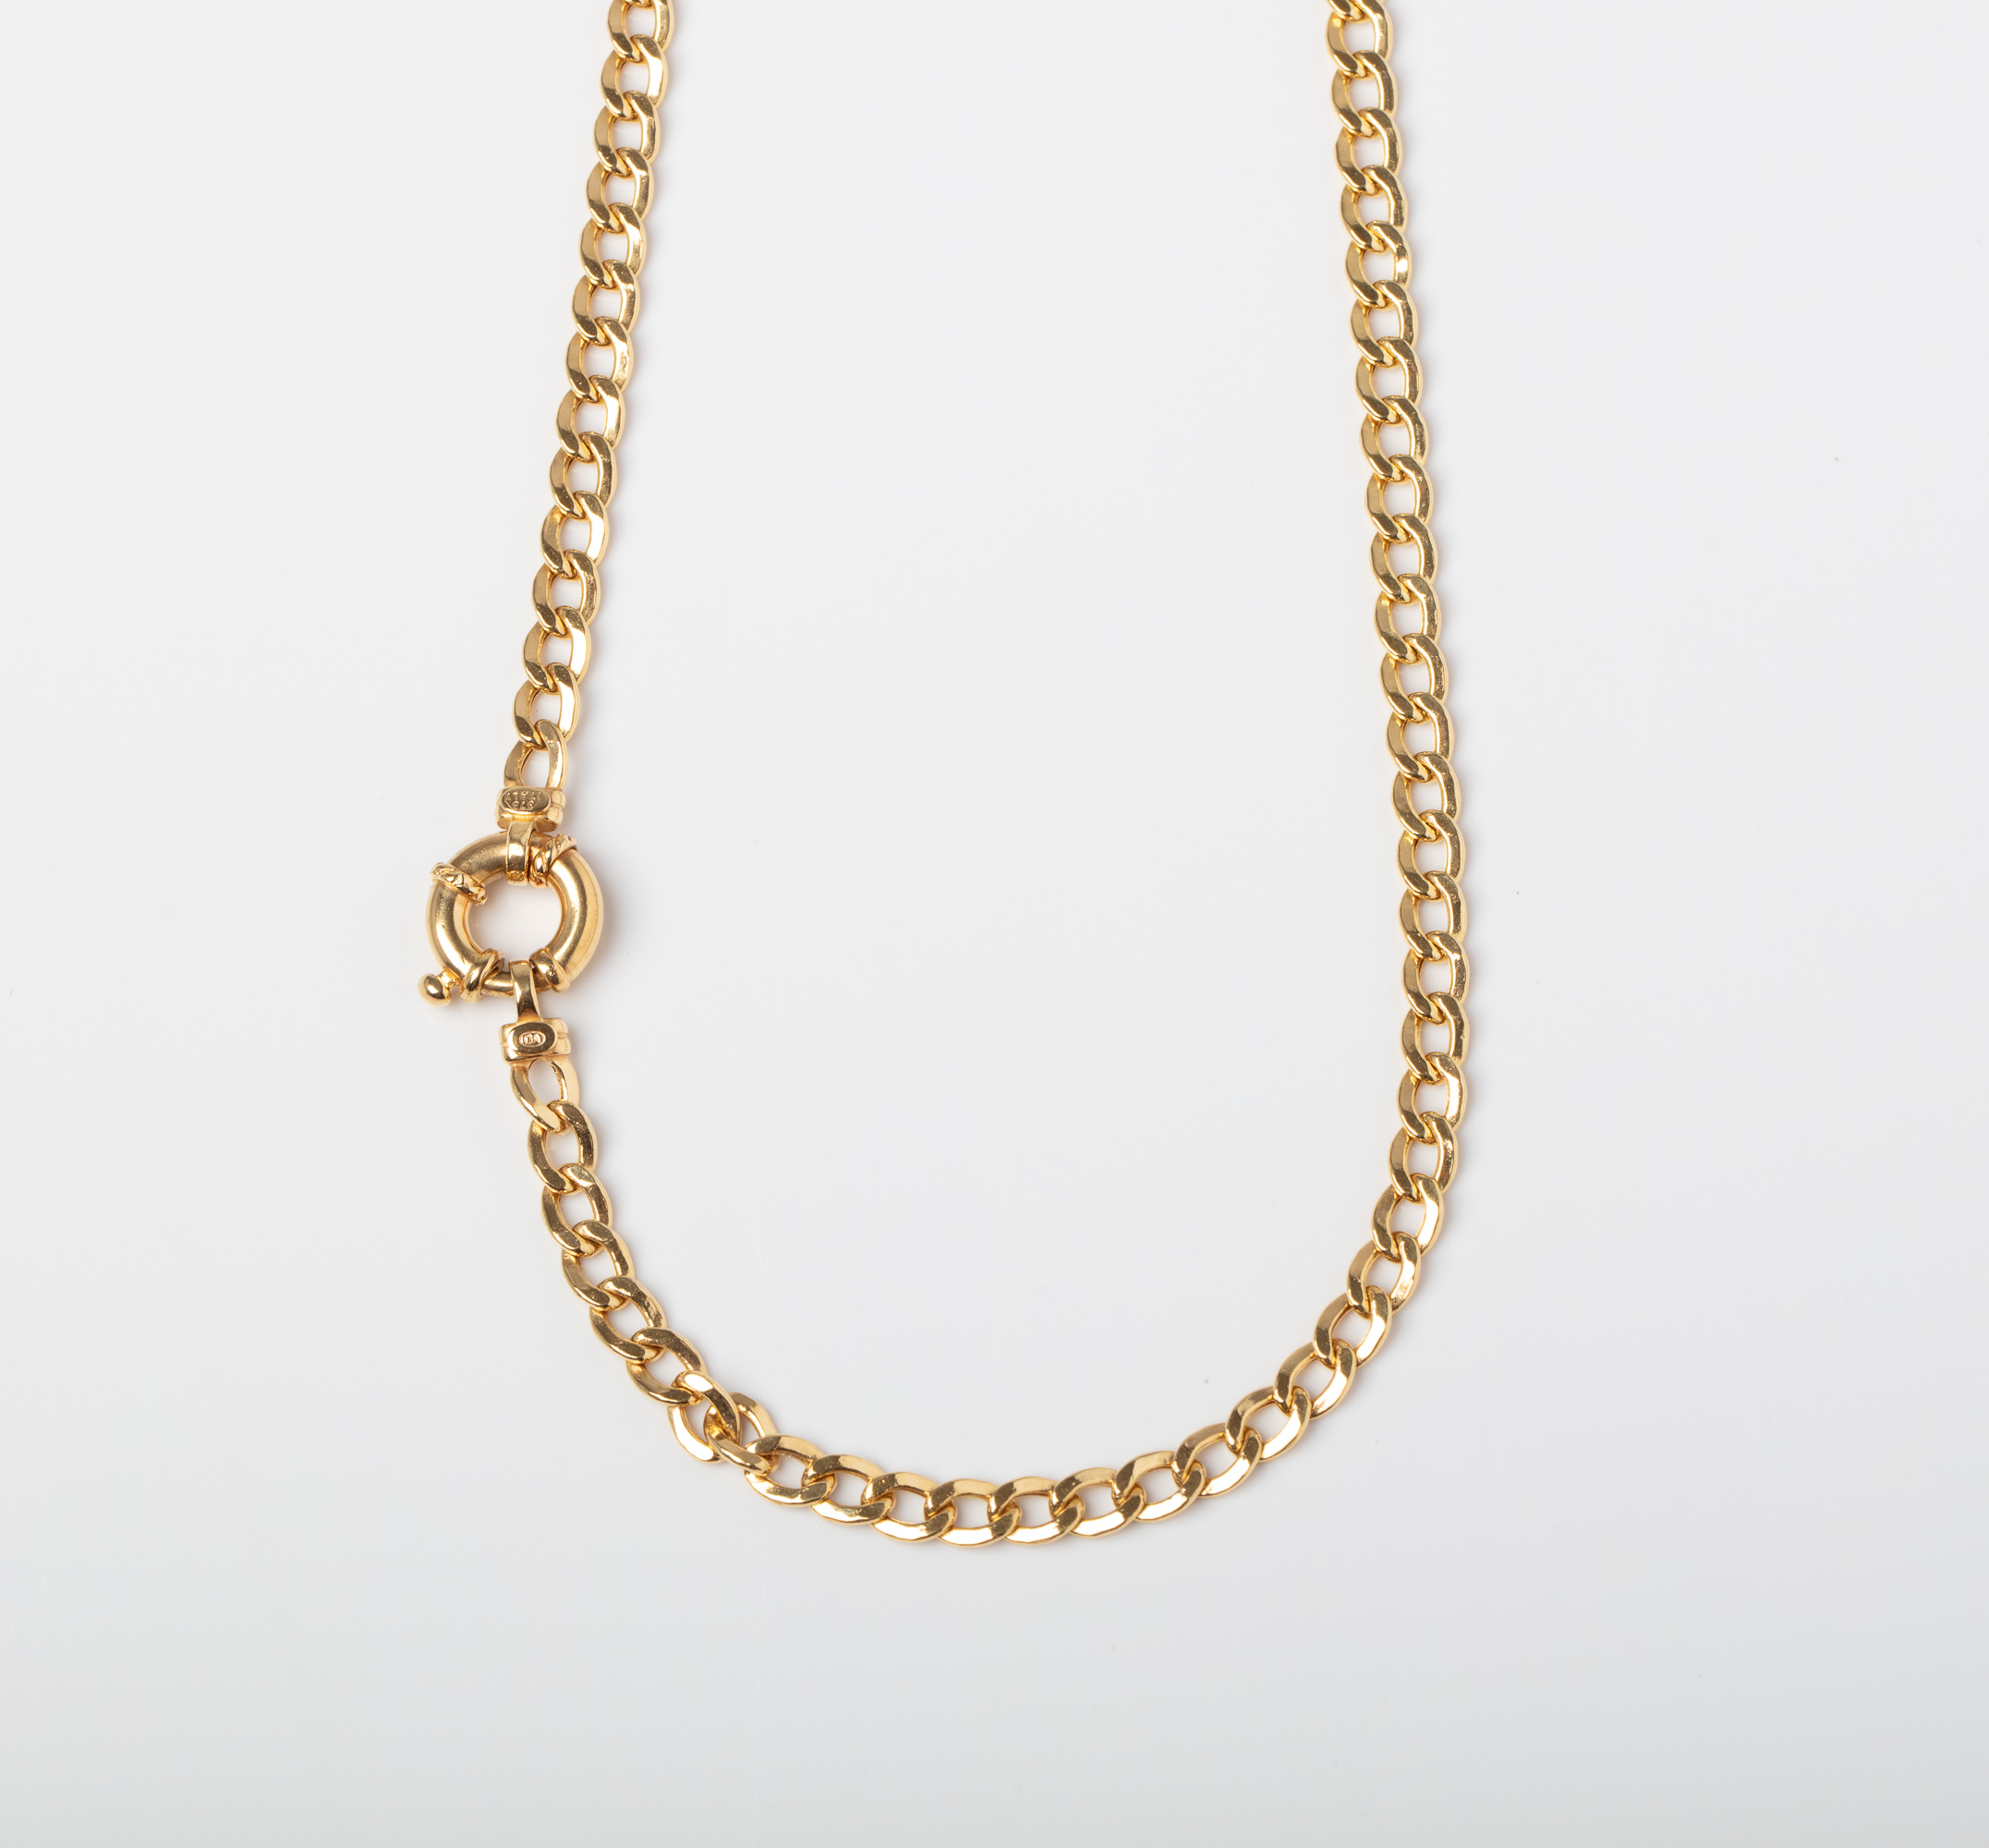 A 9CT GOLD CURB CHAIN WITH SIGNORETTI CLASP